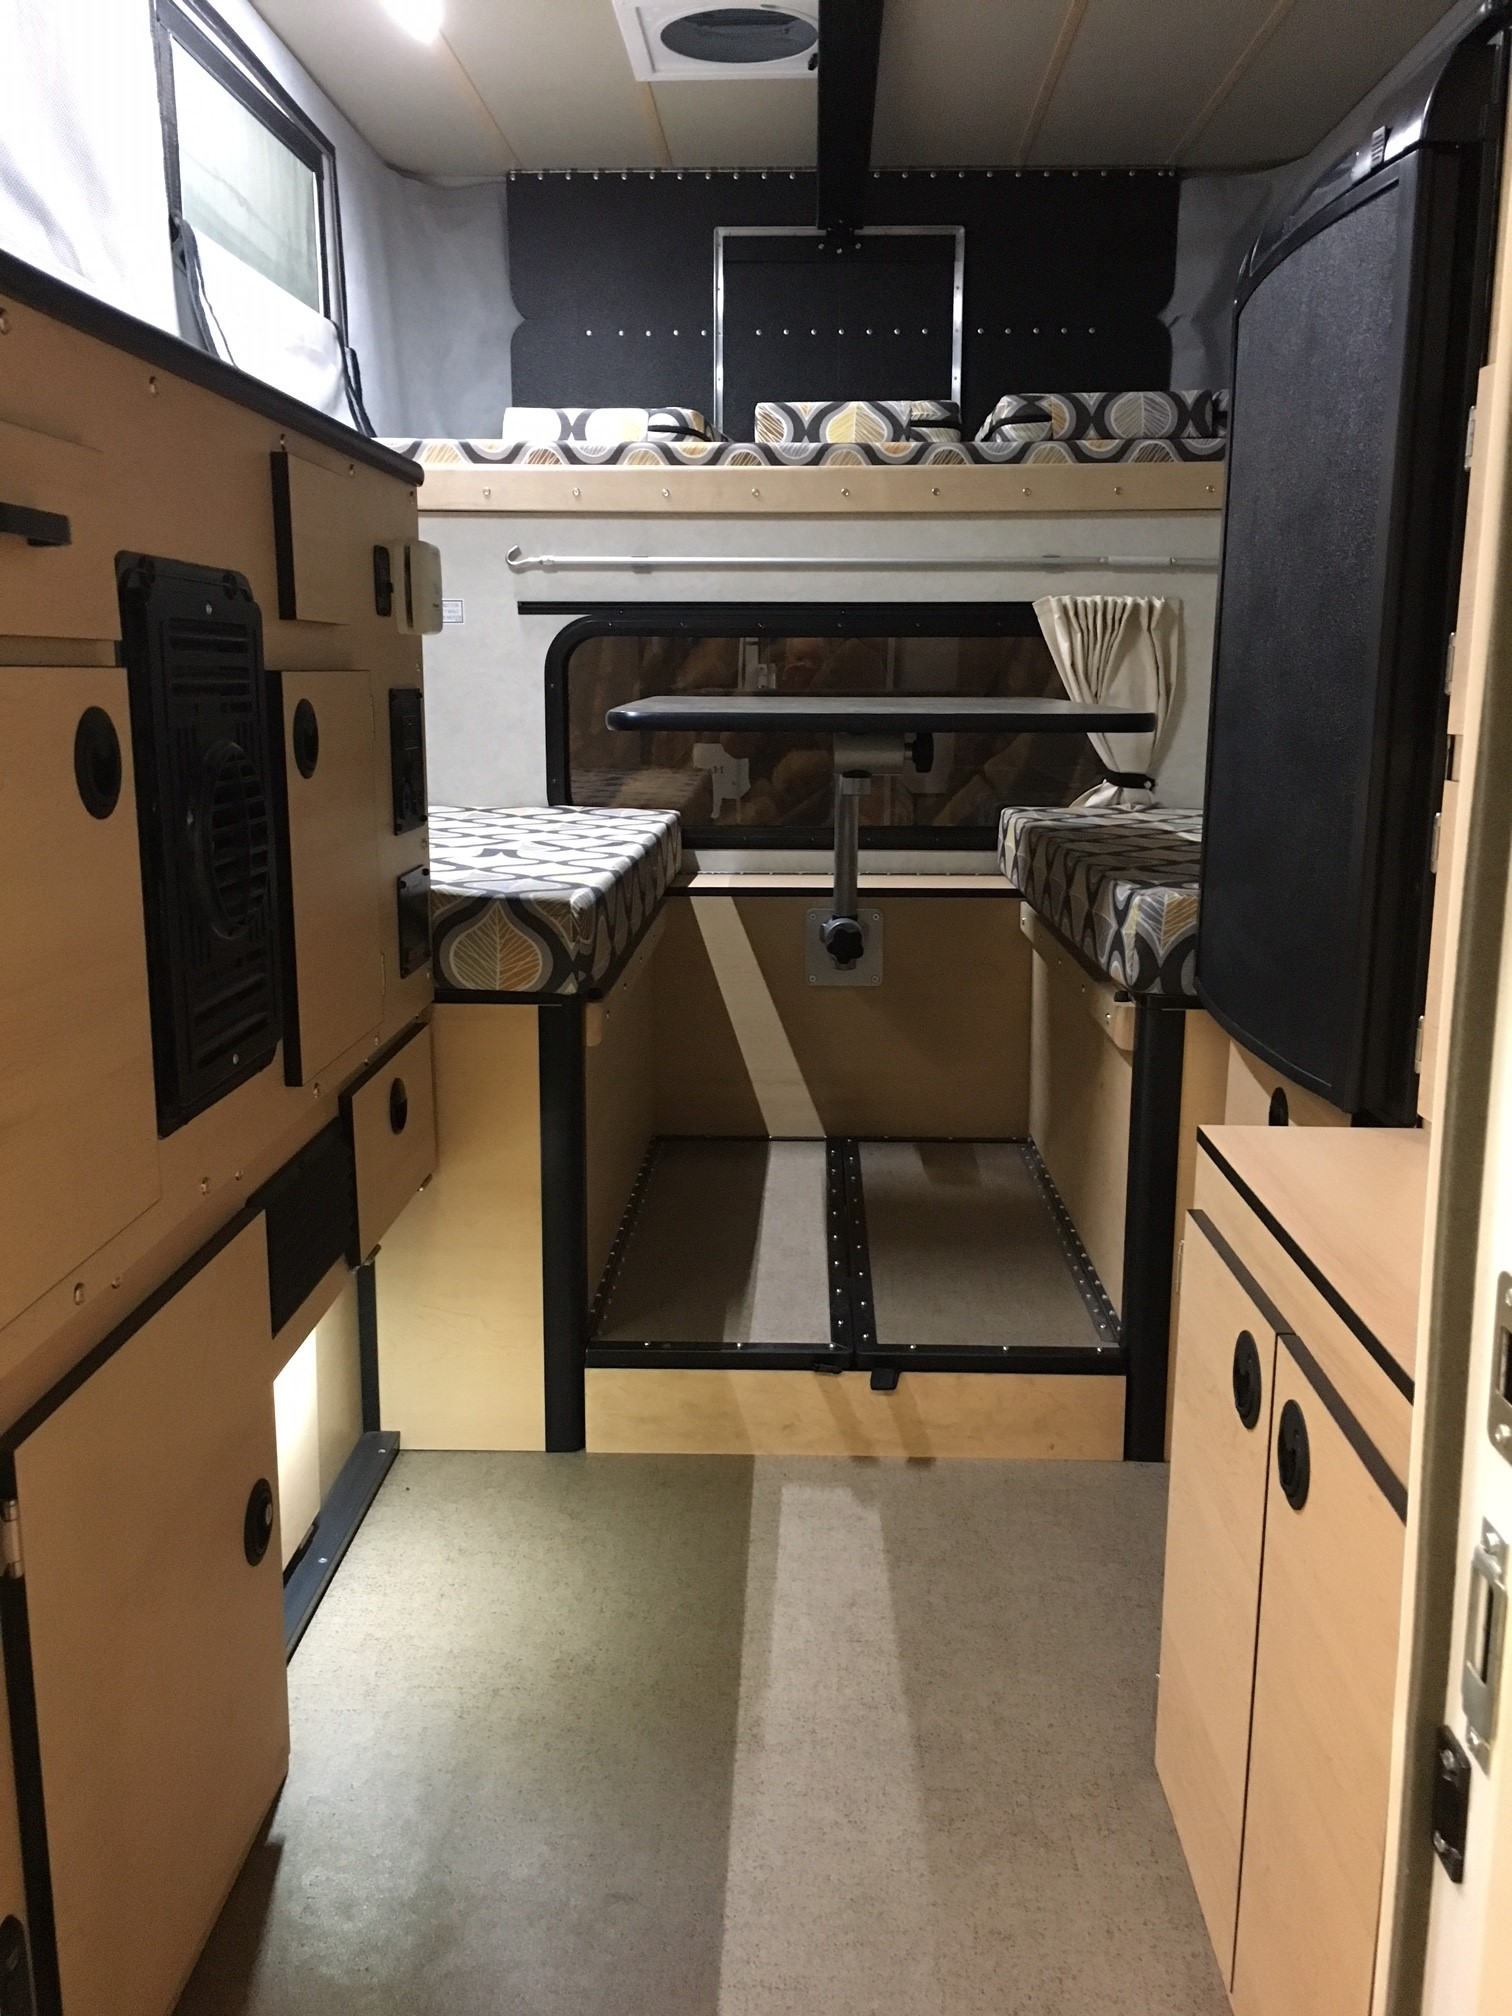 Dinette, cabinets, fridge on right. Ford w. 2019 Camper Grandby 2015